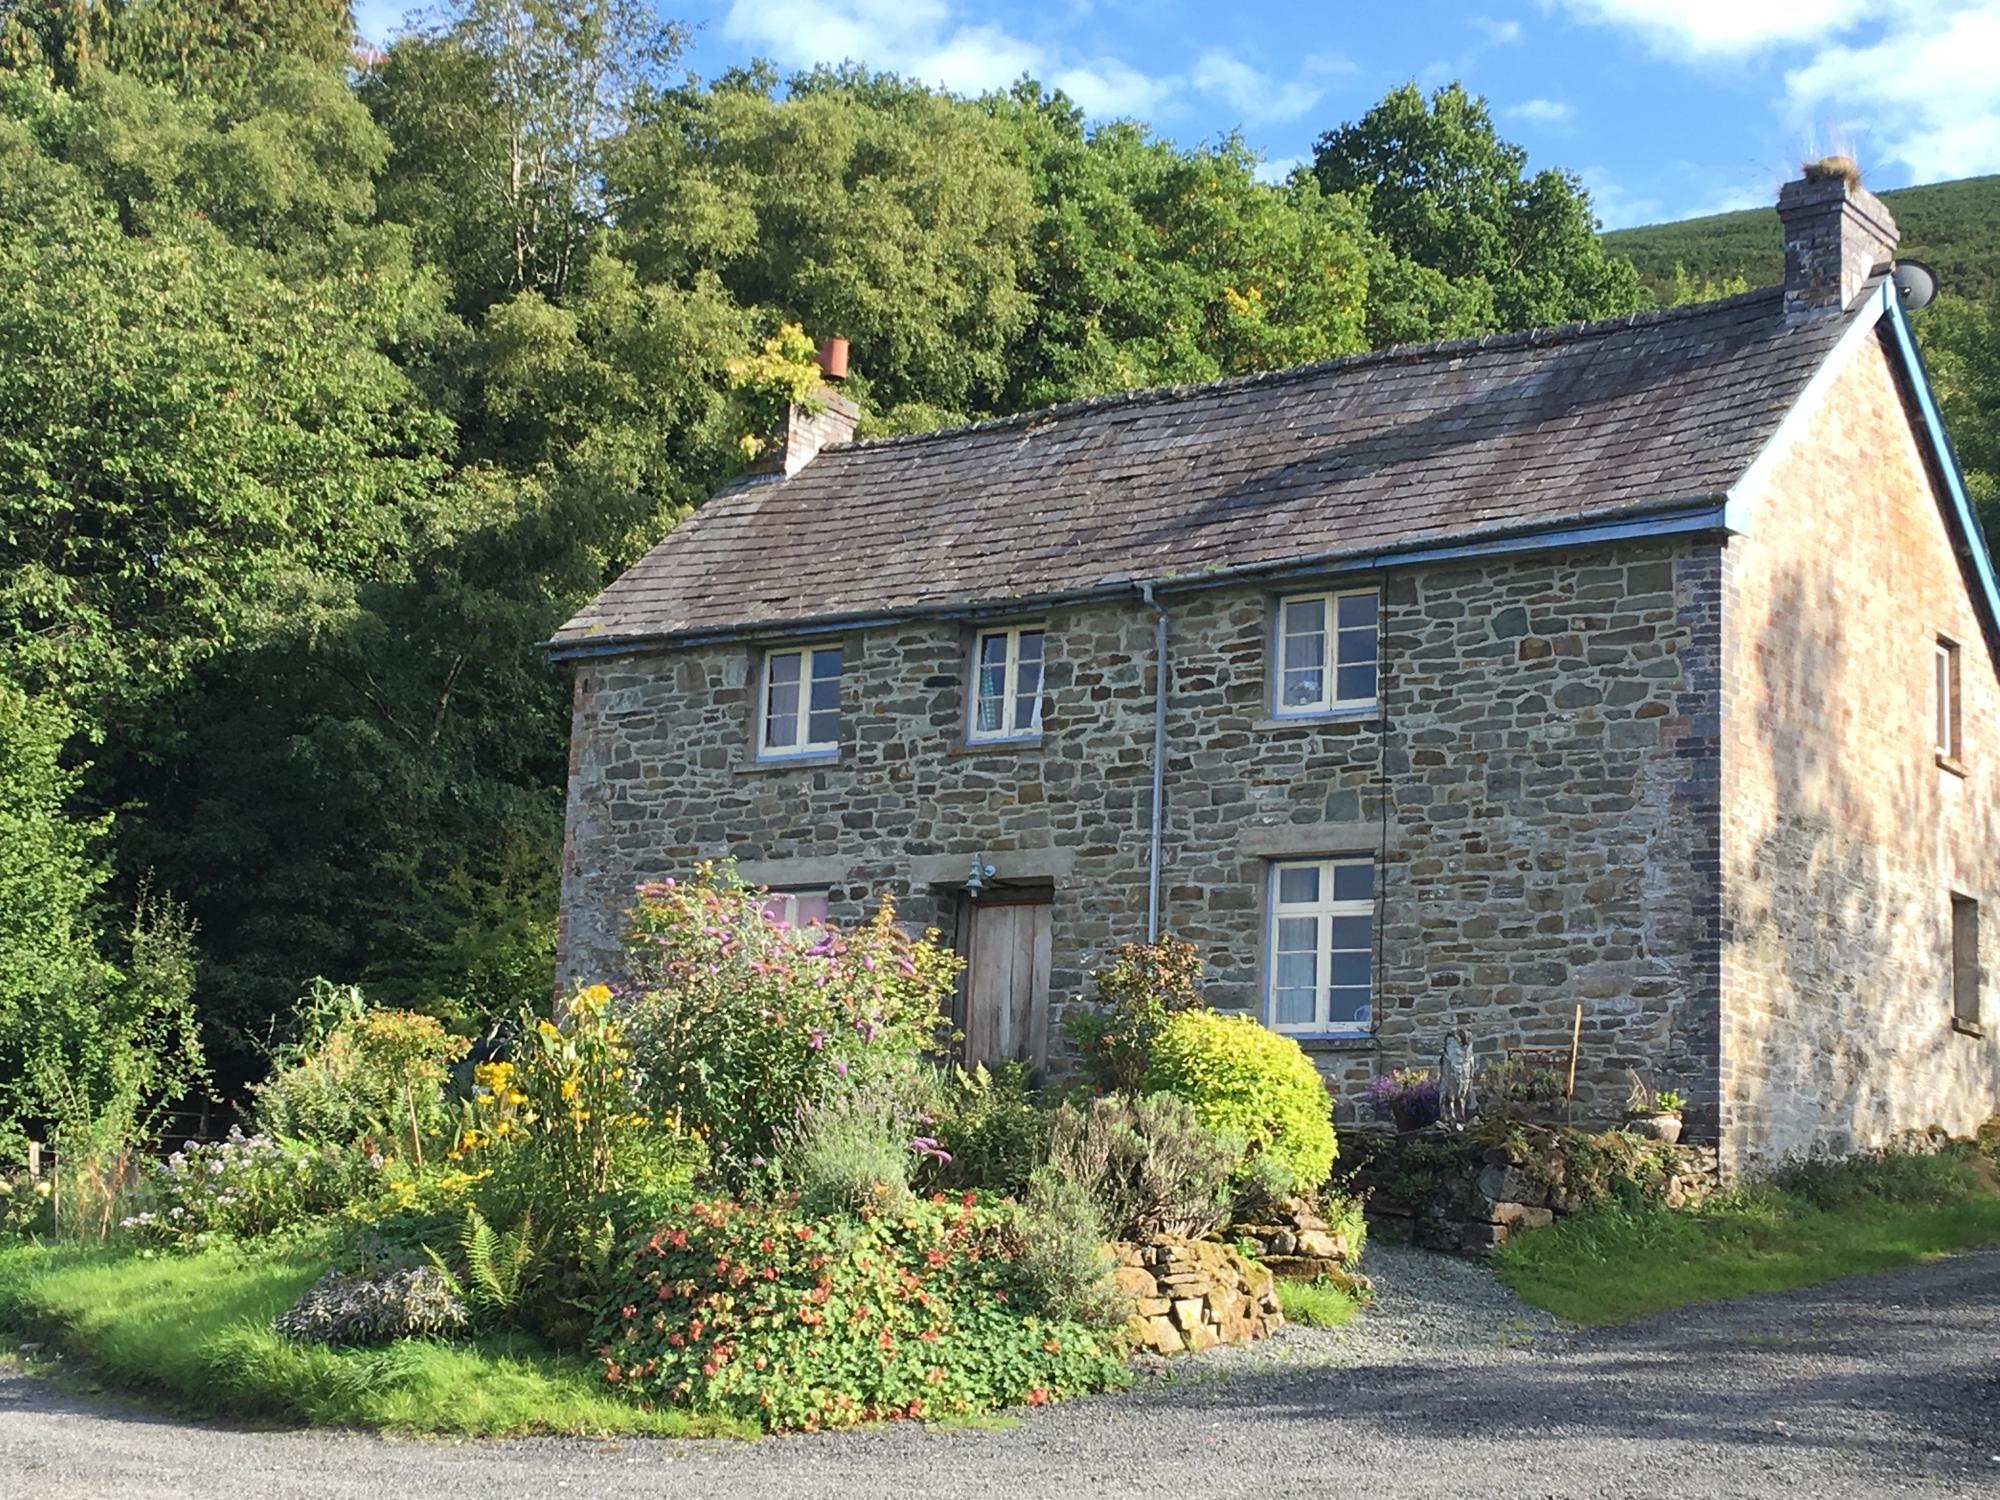 Self-Catering in Llandrindod Wells holidays at Cool Places